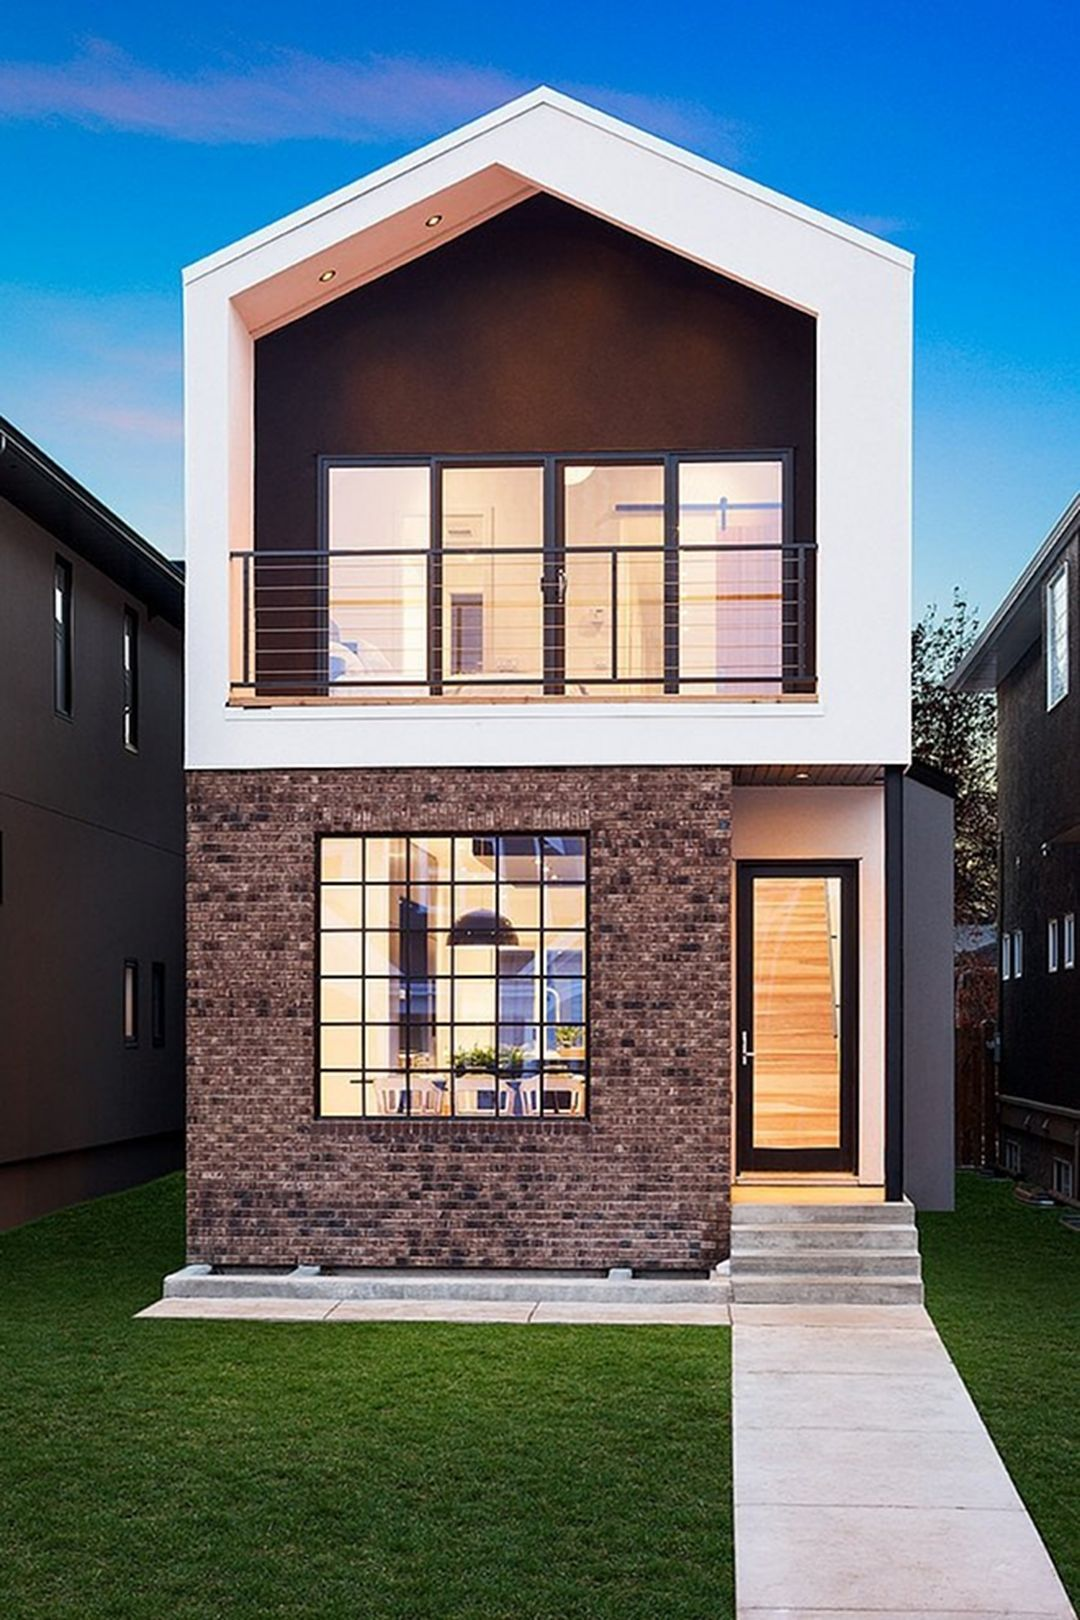 25 Awesome Modern Tiny Houses Design Ideas For Simple And